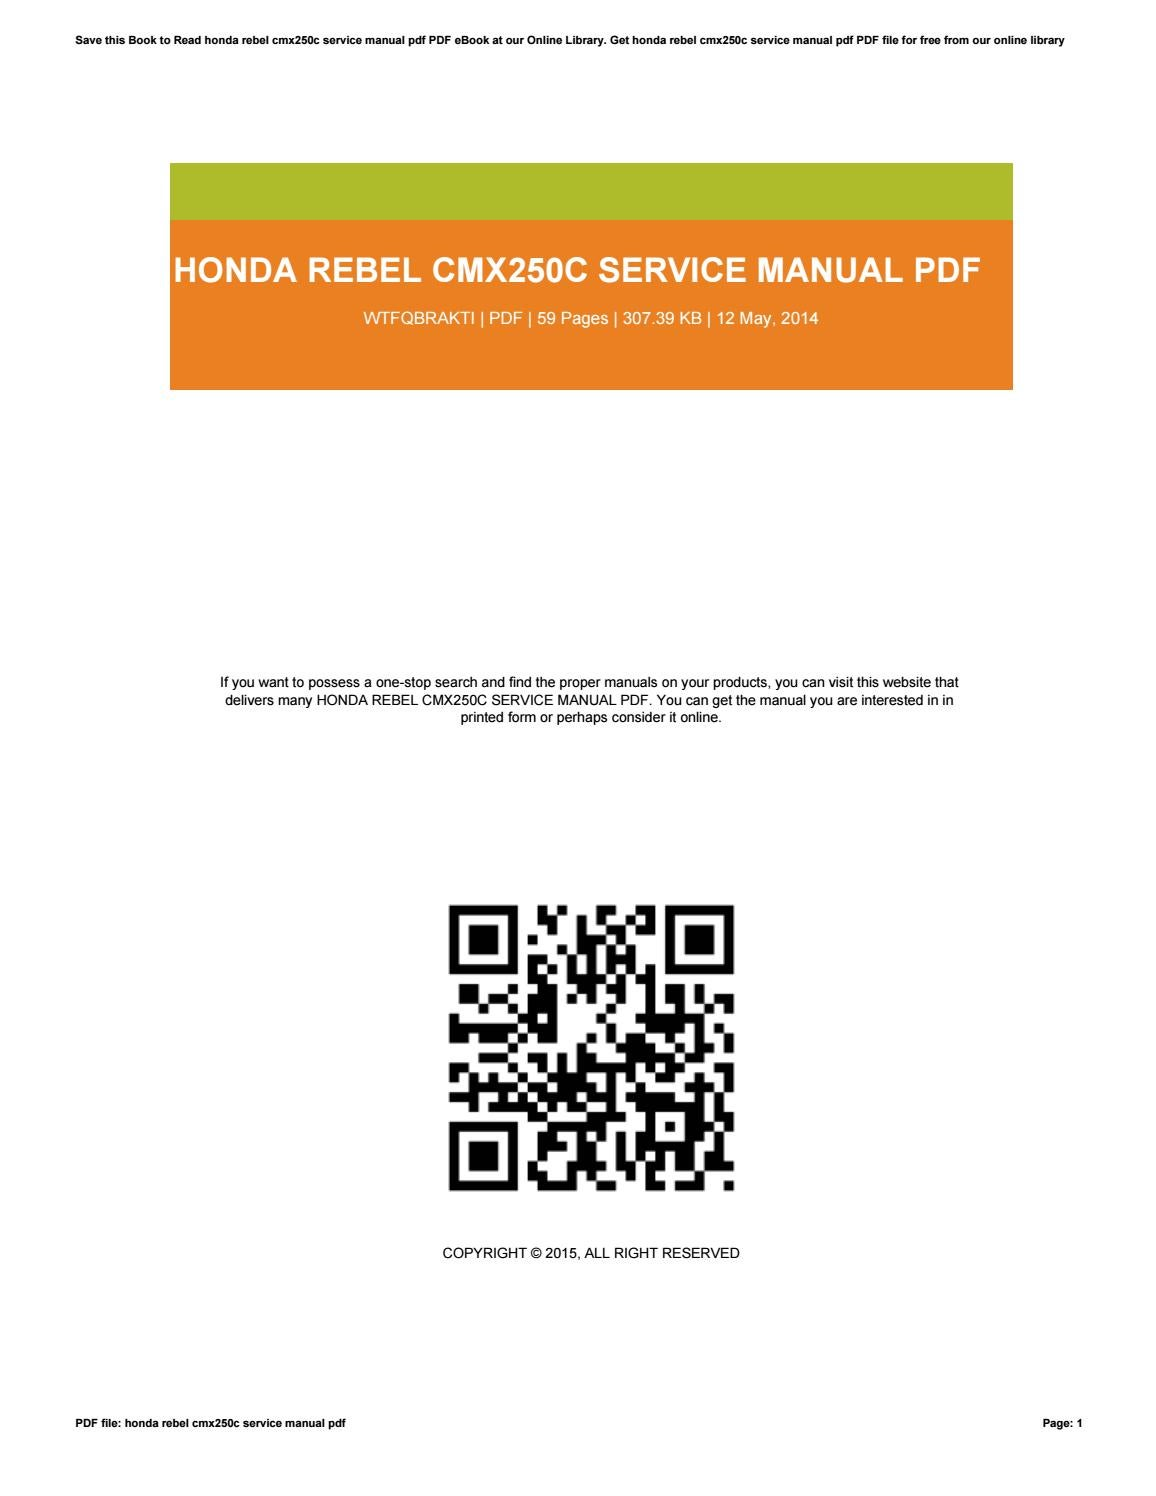 Honda rebel cmx250c service manual pdf dolapgnetband honda fandeluxe Image collections